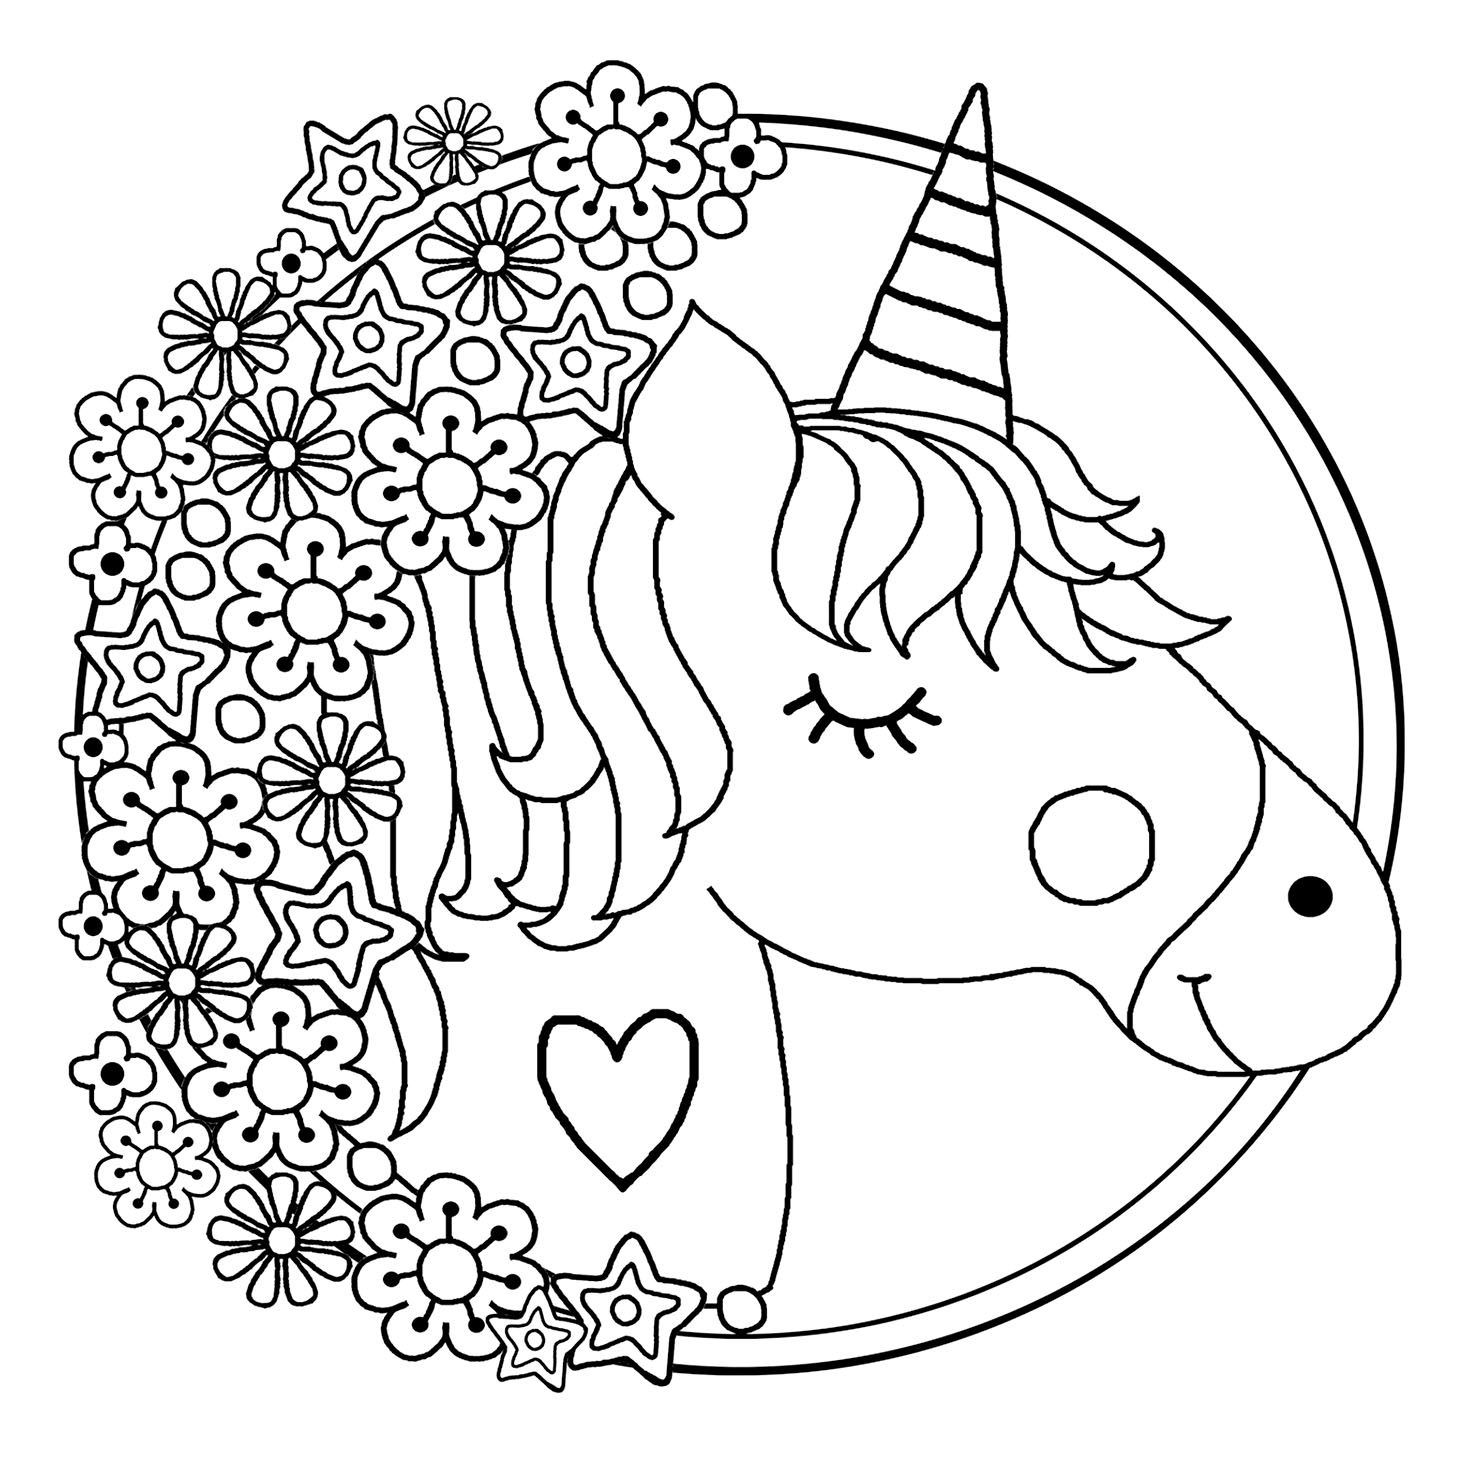 coloring worksheets unicorn print download unicorn coloring pages for children worksheets unicorn coloring 1 1